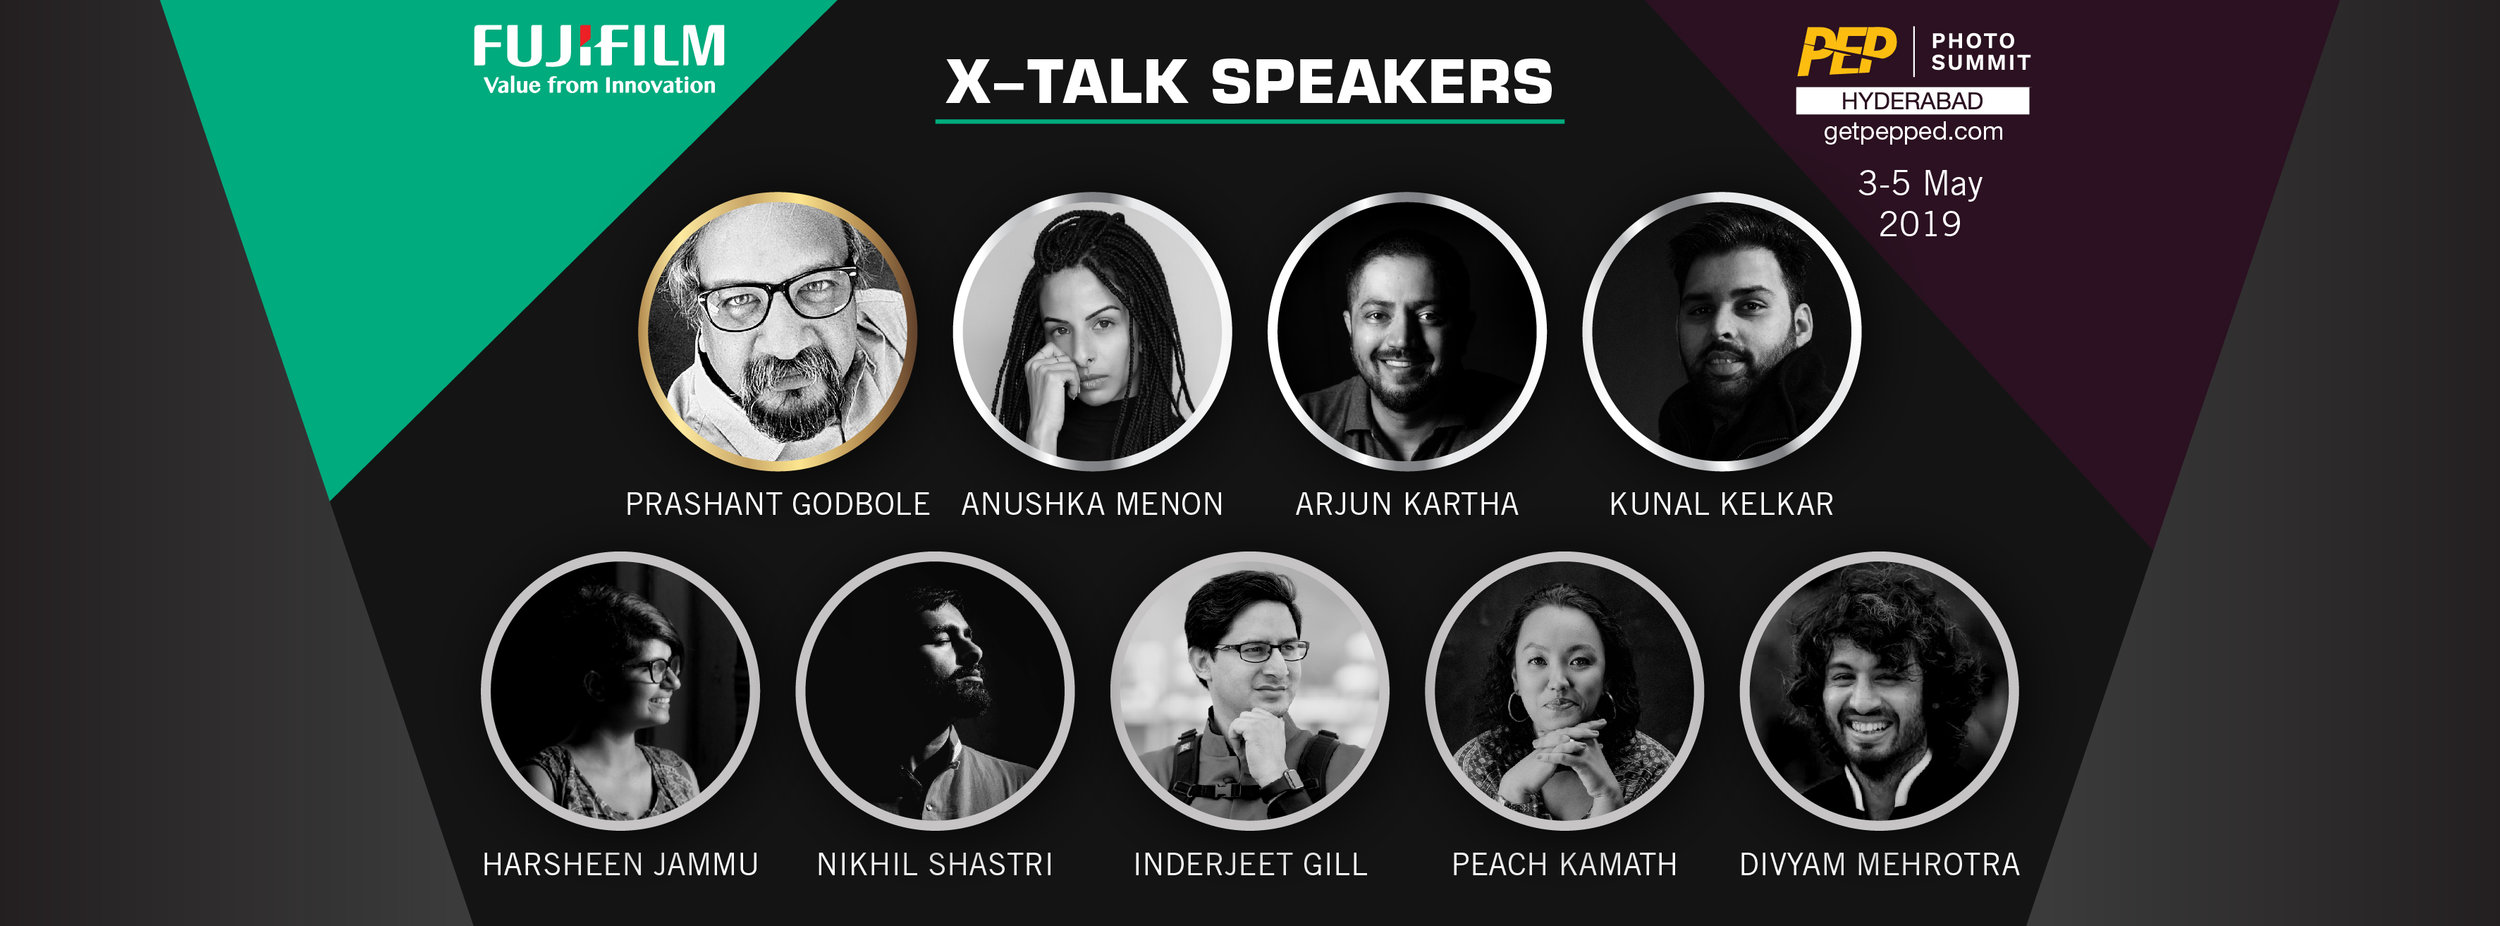 Fujifilm joins hands with PEP to bring sessions by these photographers to Photo Summit 2019